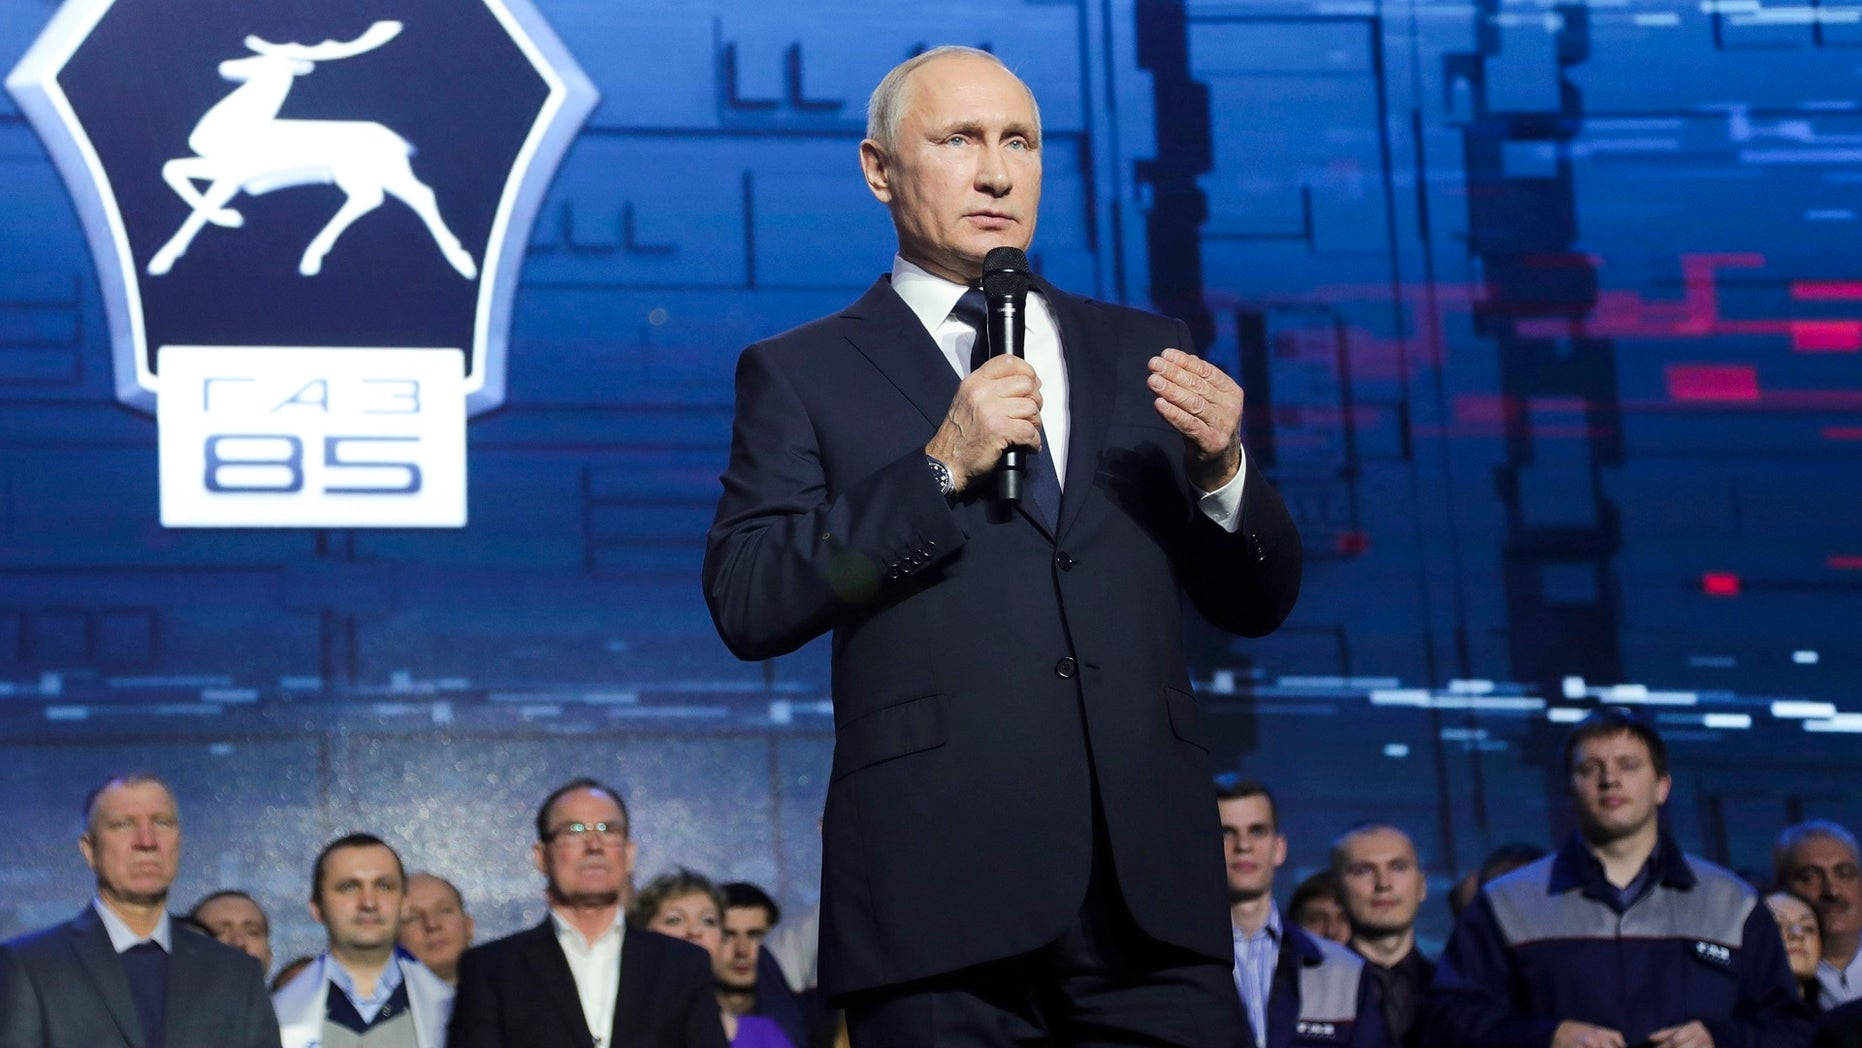 Russian President Vladimir Putin speaks at a meeting with workers of the GAZ factory in Nizhny Novgorod, Russia, Wednesday, Dec. 6, 2017. Putin says he will seek re-election in next March's election